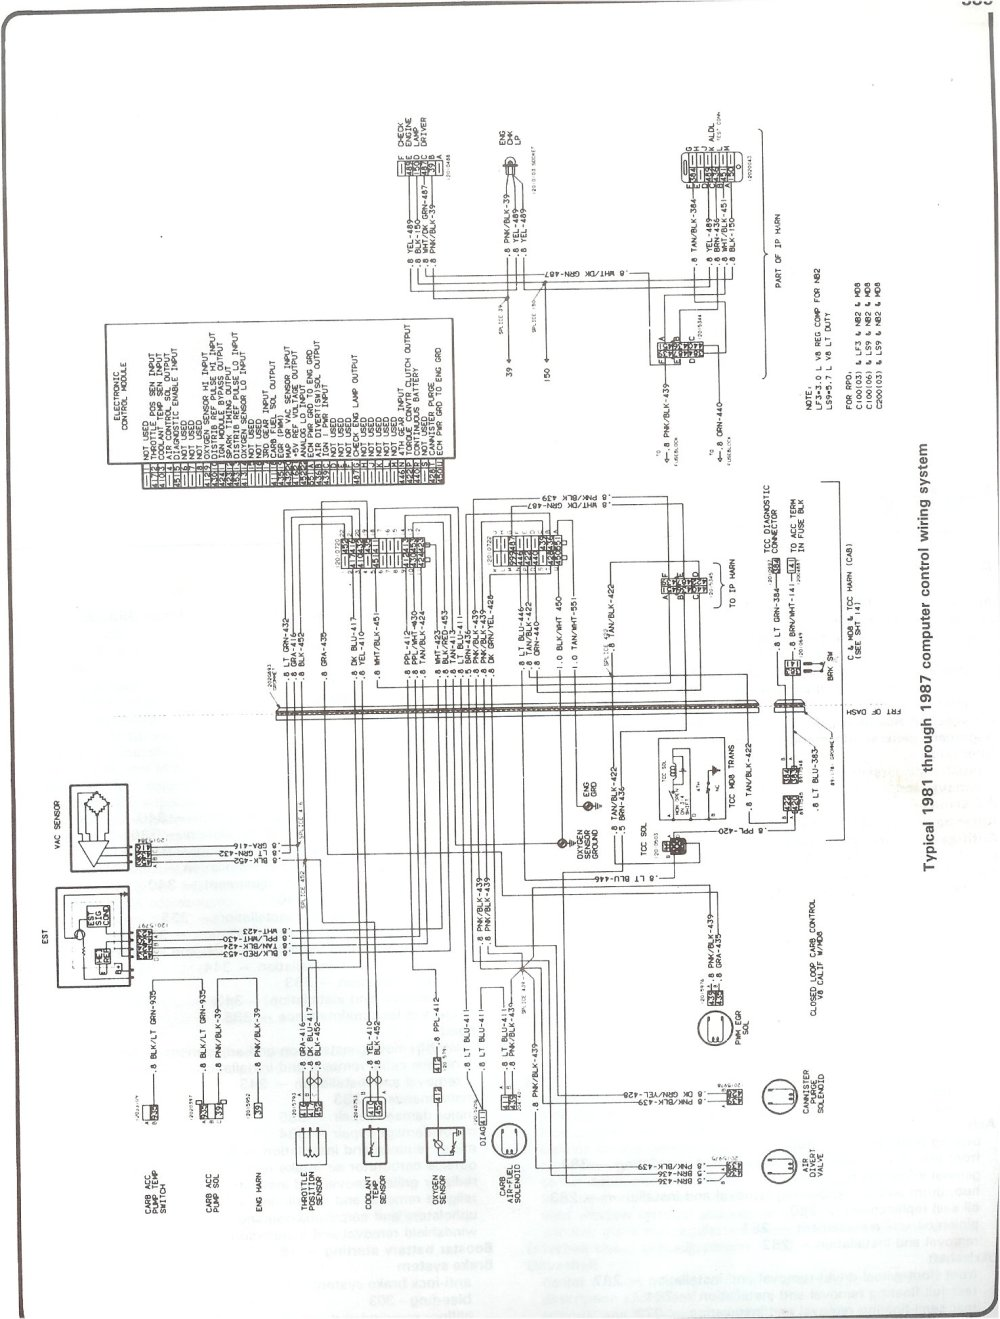 medium resolution of complete 73 87 wiring diagrams rh forum 73 87chevytrucks com 1985 gmc sierra wiring diagram 1985 gmc k1500 wiring diagram